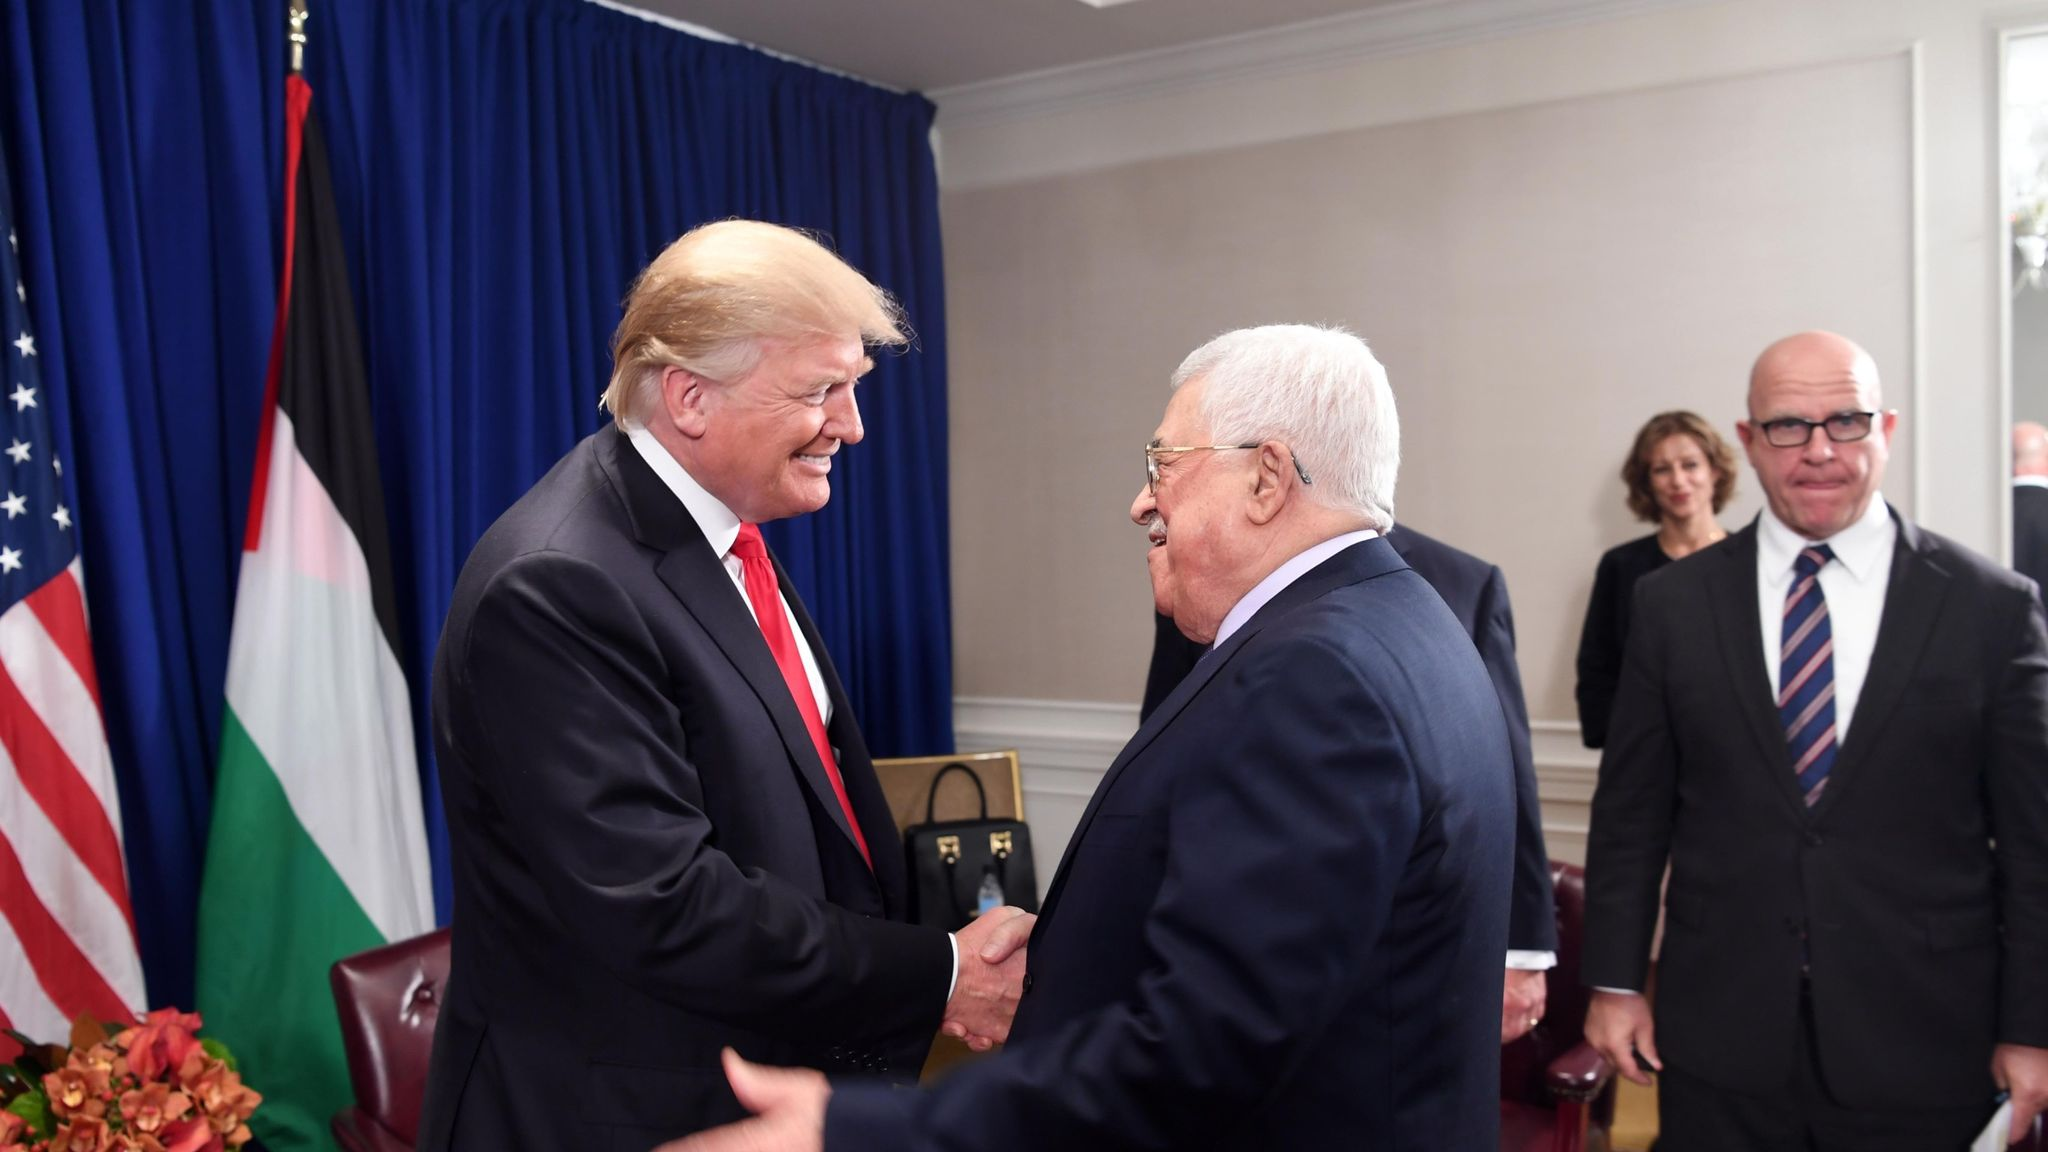 Why does Donald Trump want to move the US embassy in Israel?